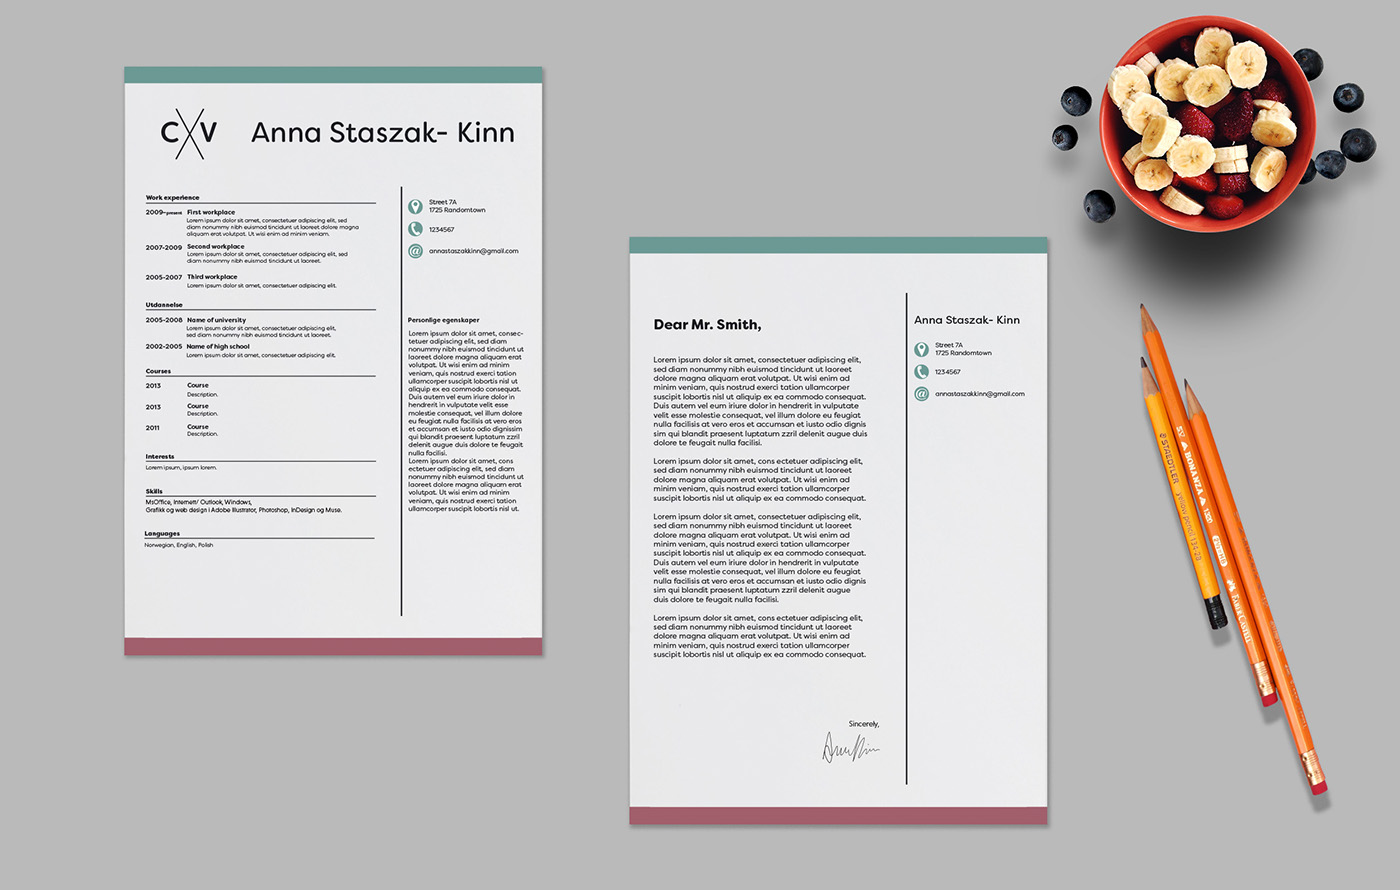 Cv and reference letter templates on behance delicate cv and reference letter templates font used filson soft spiritdancerdesigns Images